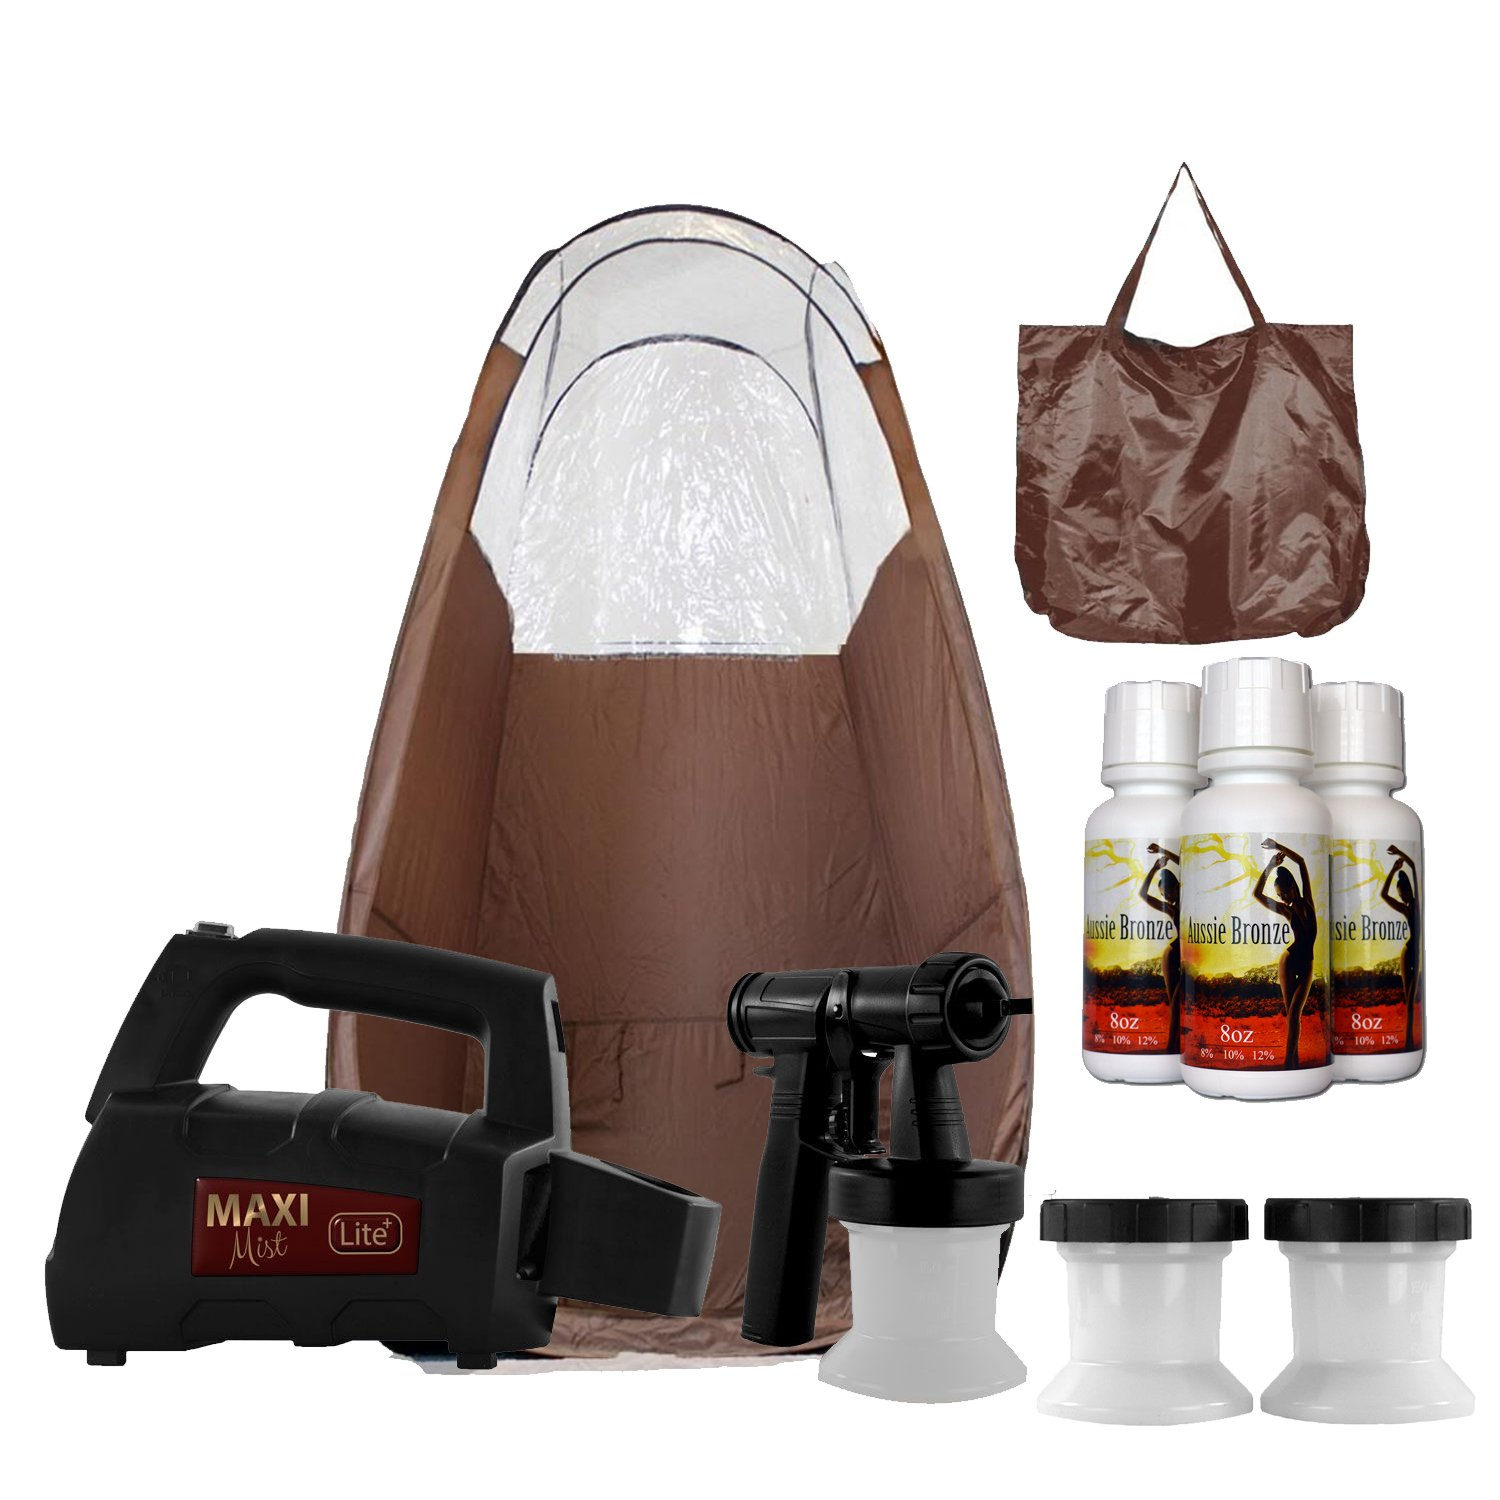 Maxi-Mist Lite Plus HVLP Sunless Spray Tanning KIT Tent Machine Airbrush Tan Maximist BRWN by MaxiMist (Image #1)